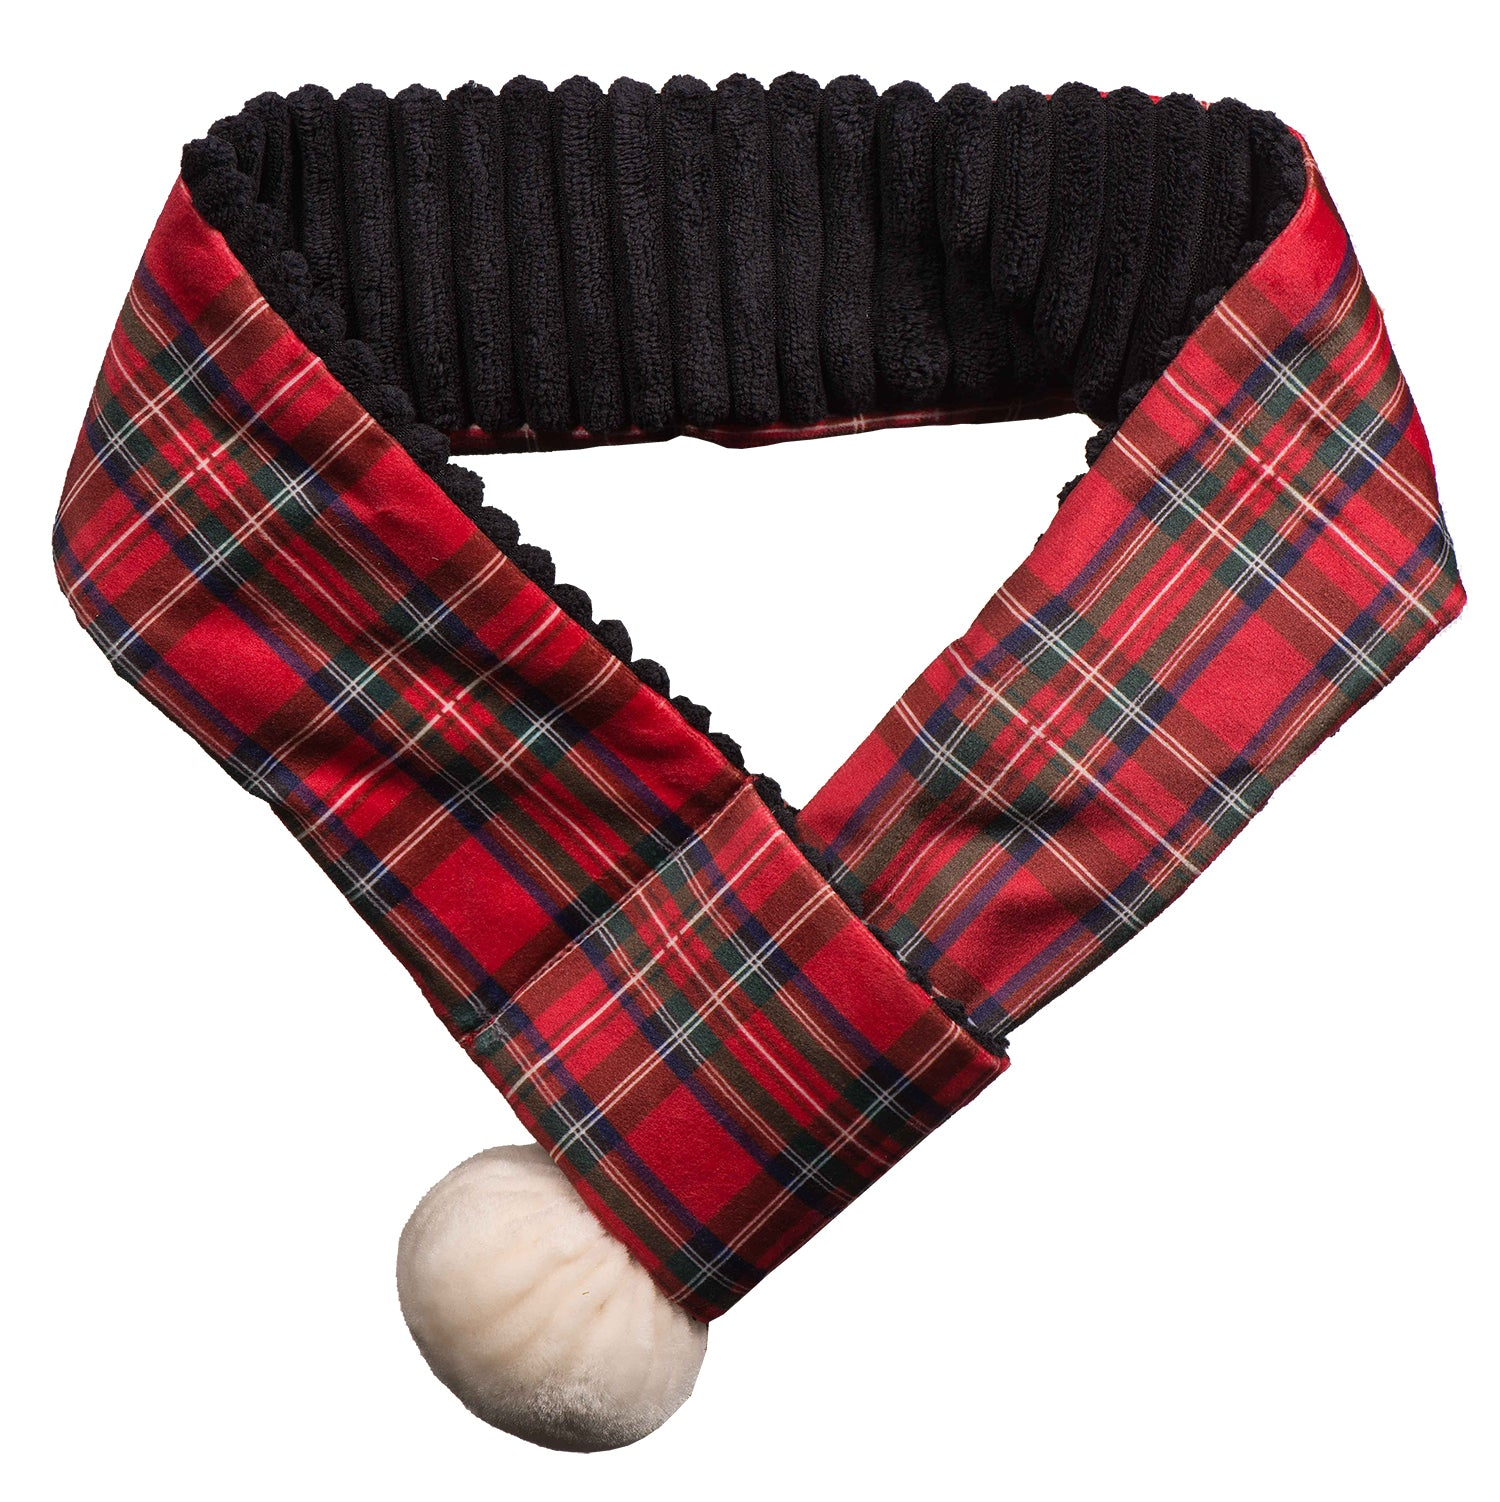 HuggleHounds Holiday 2020 Totally Tartan Scarf - Small (fits necks 10-14